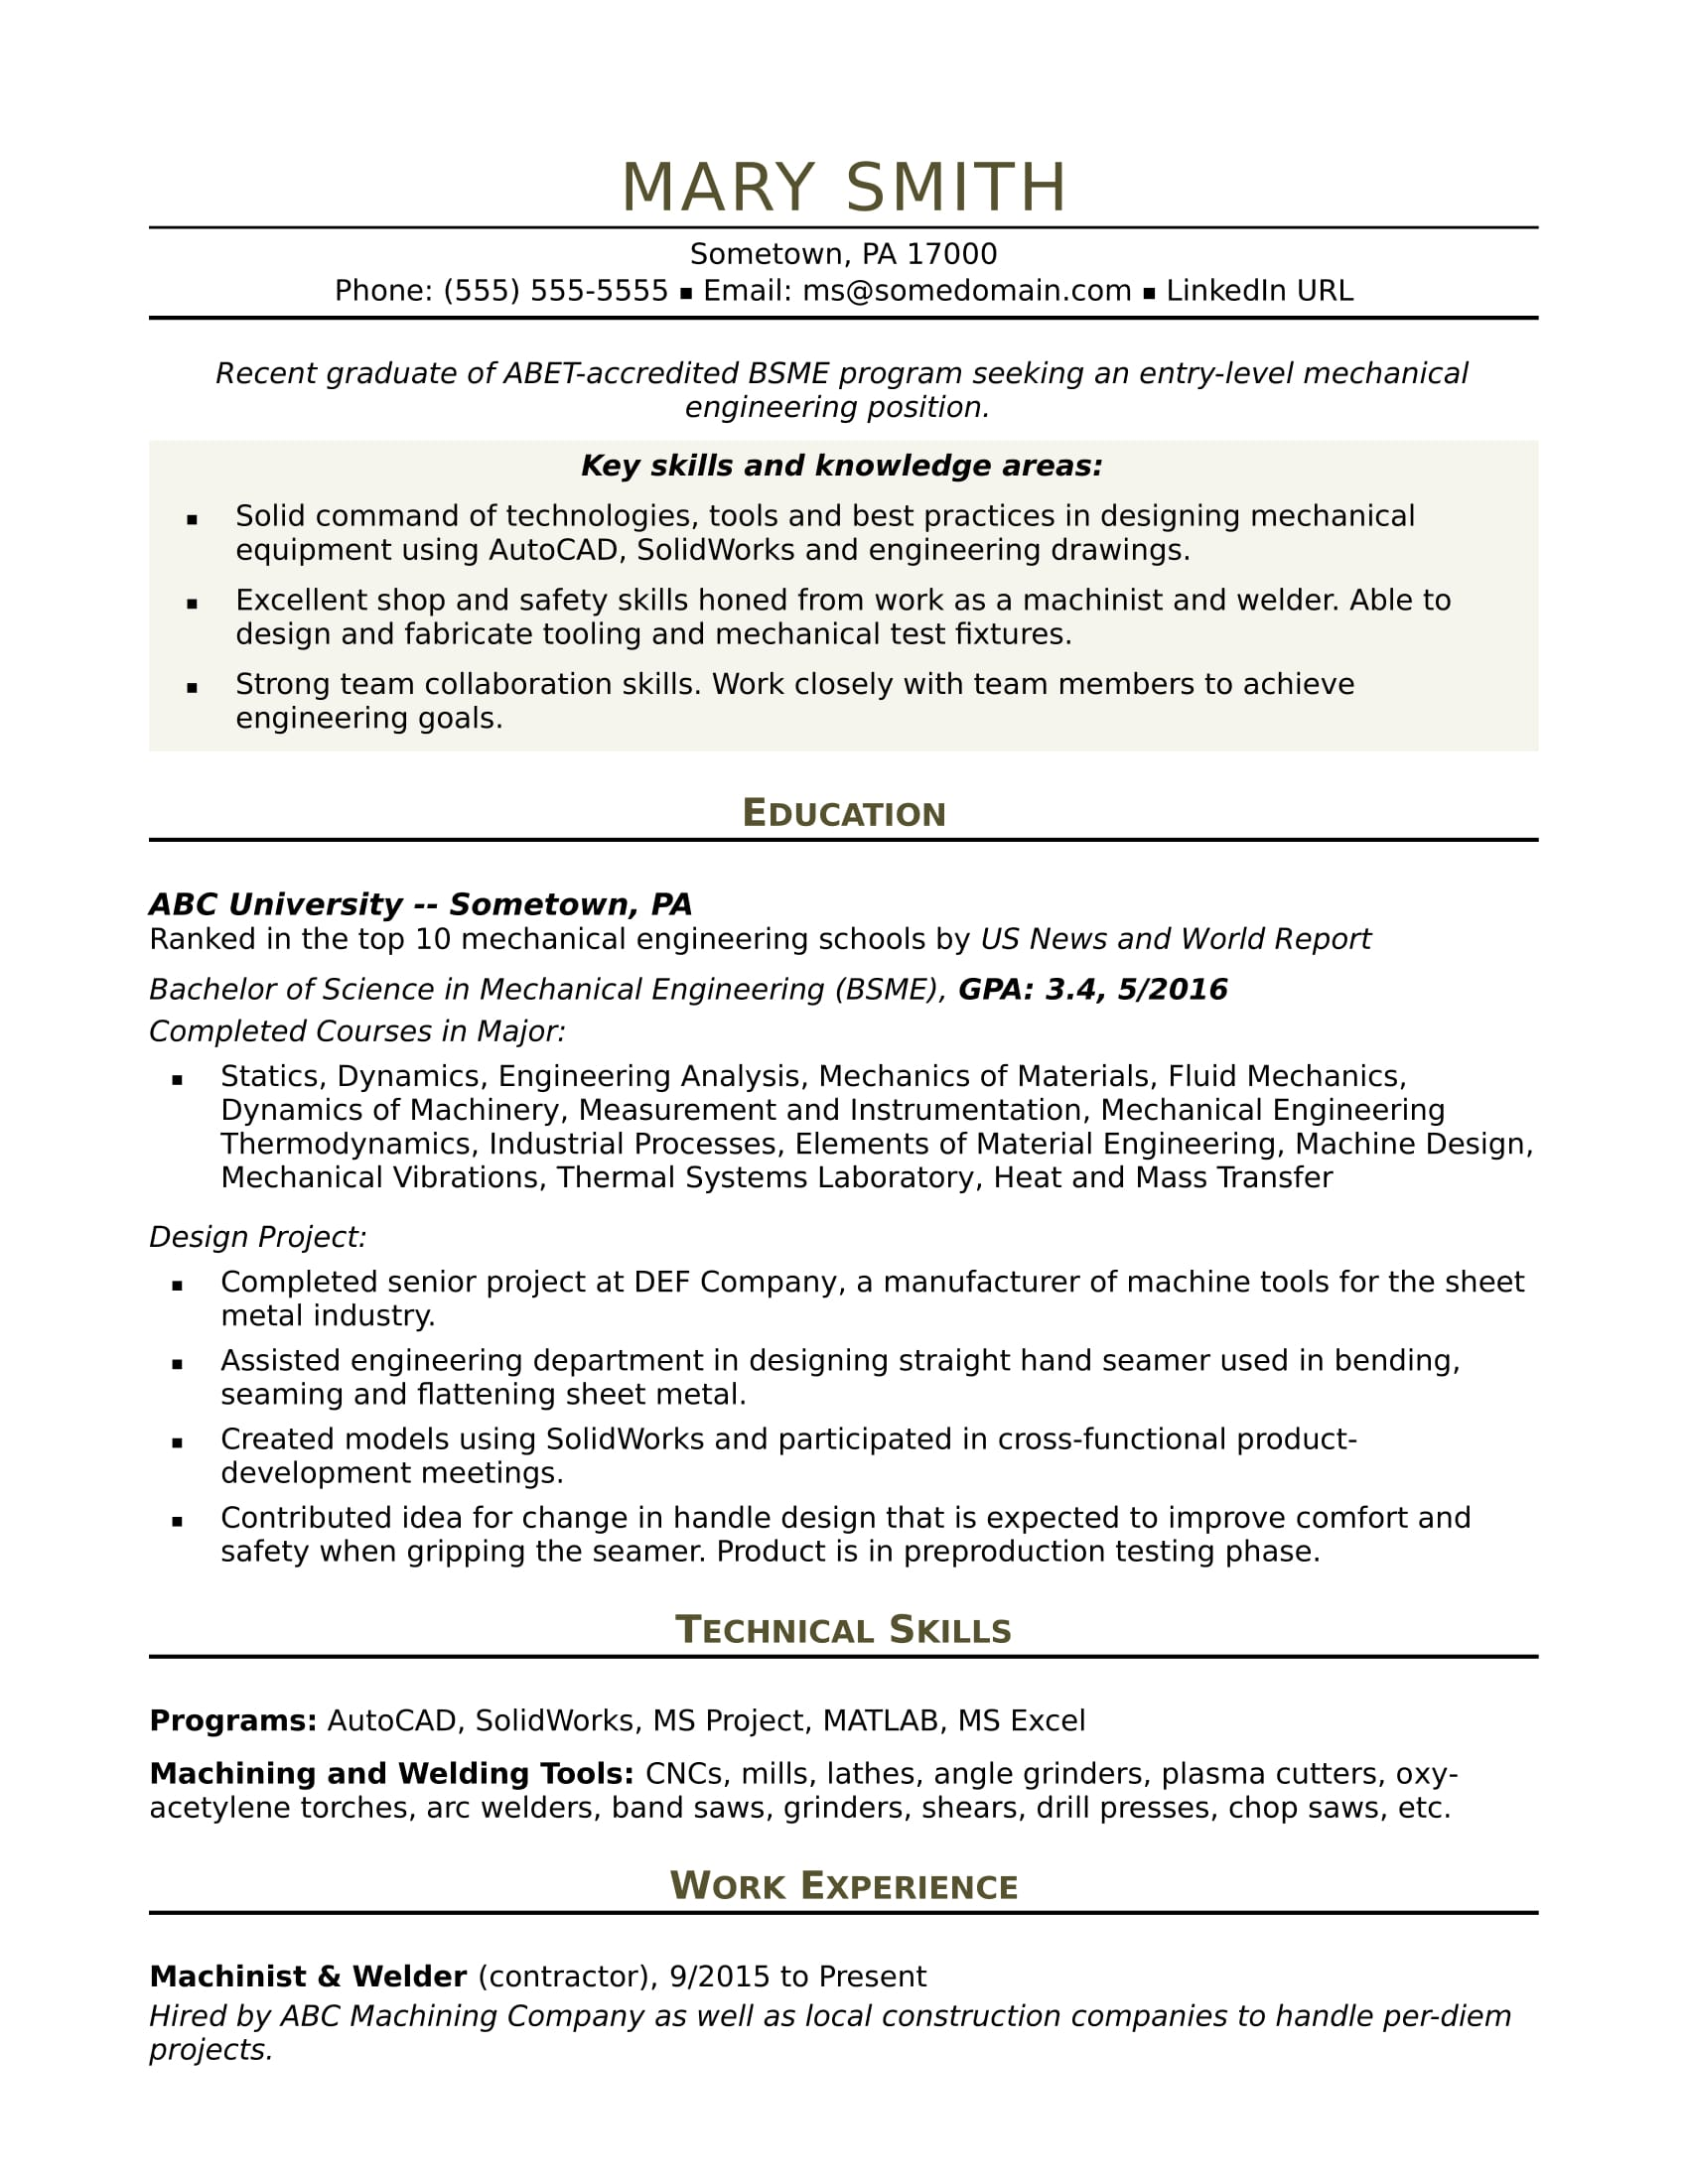 cv qualifications